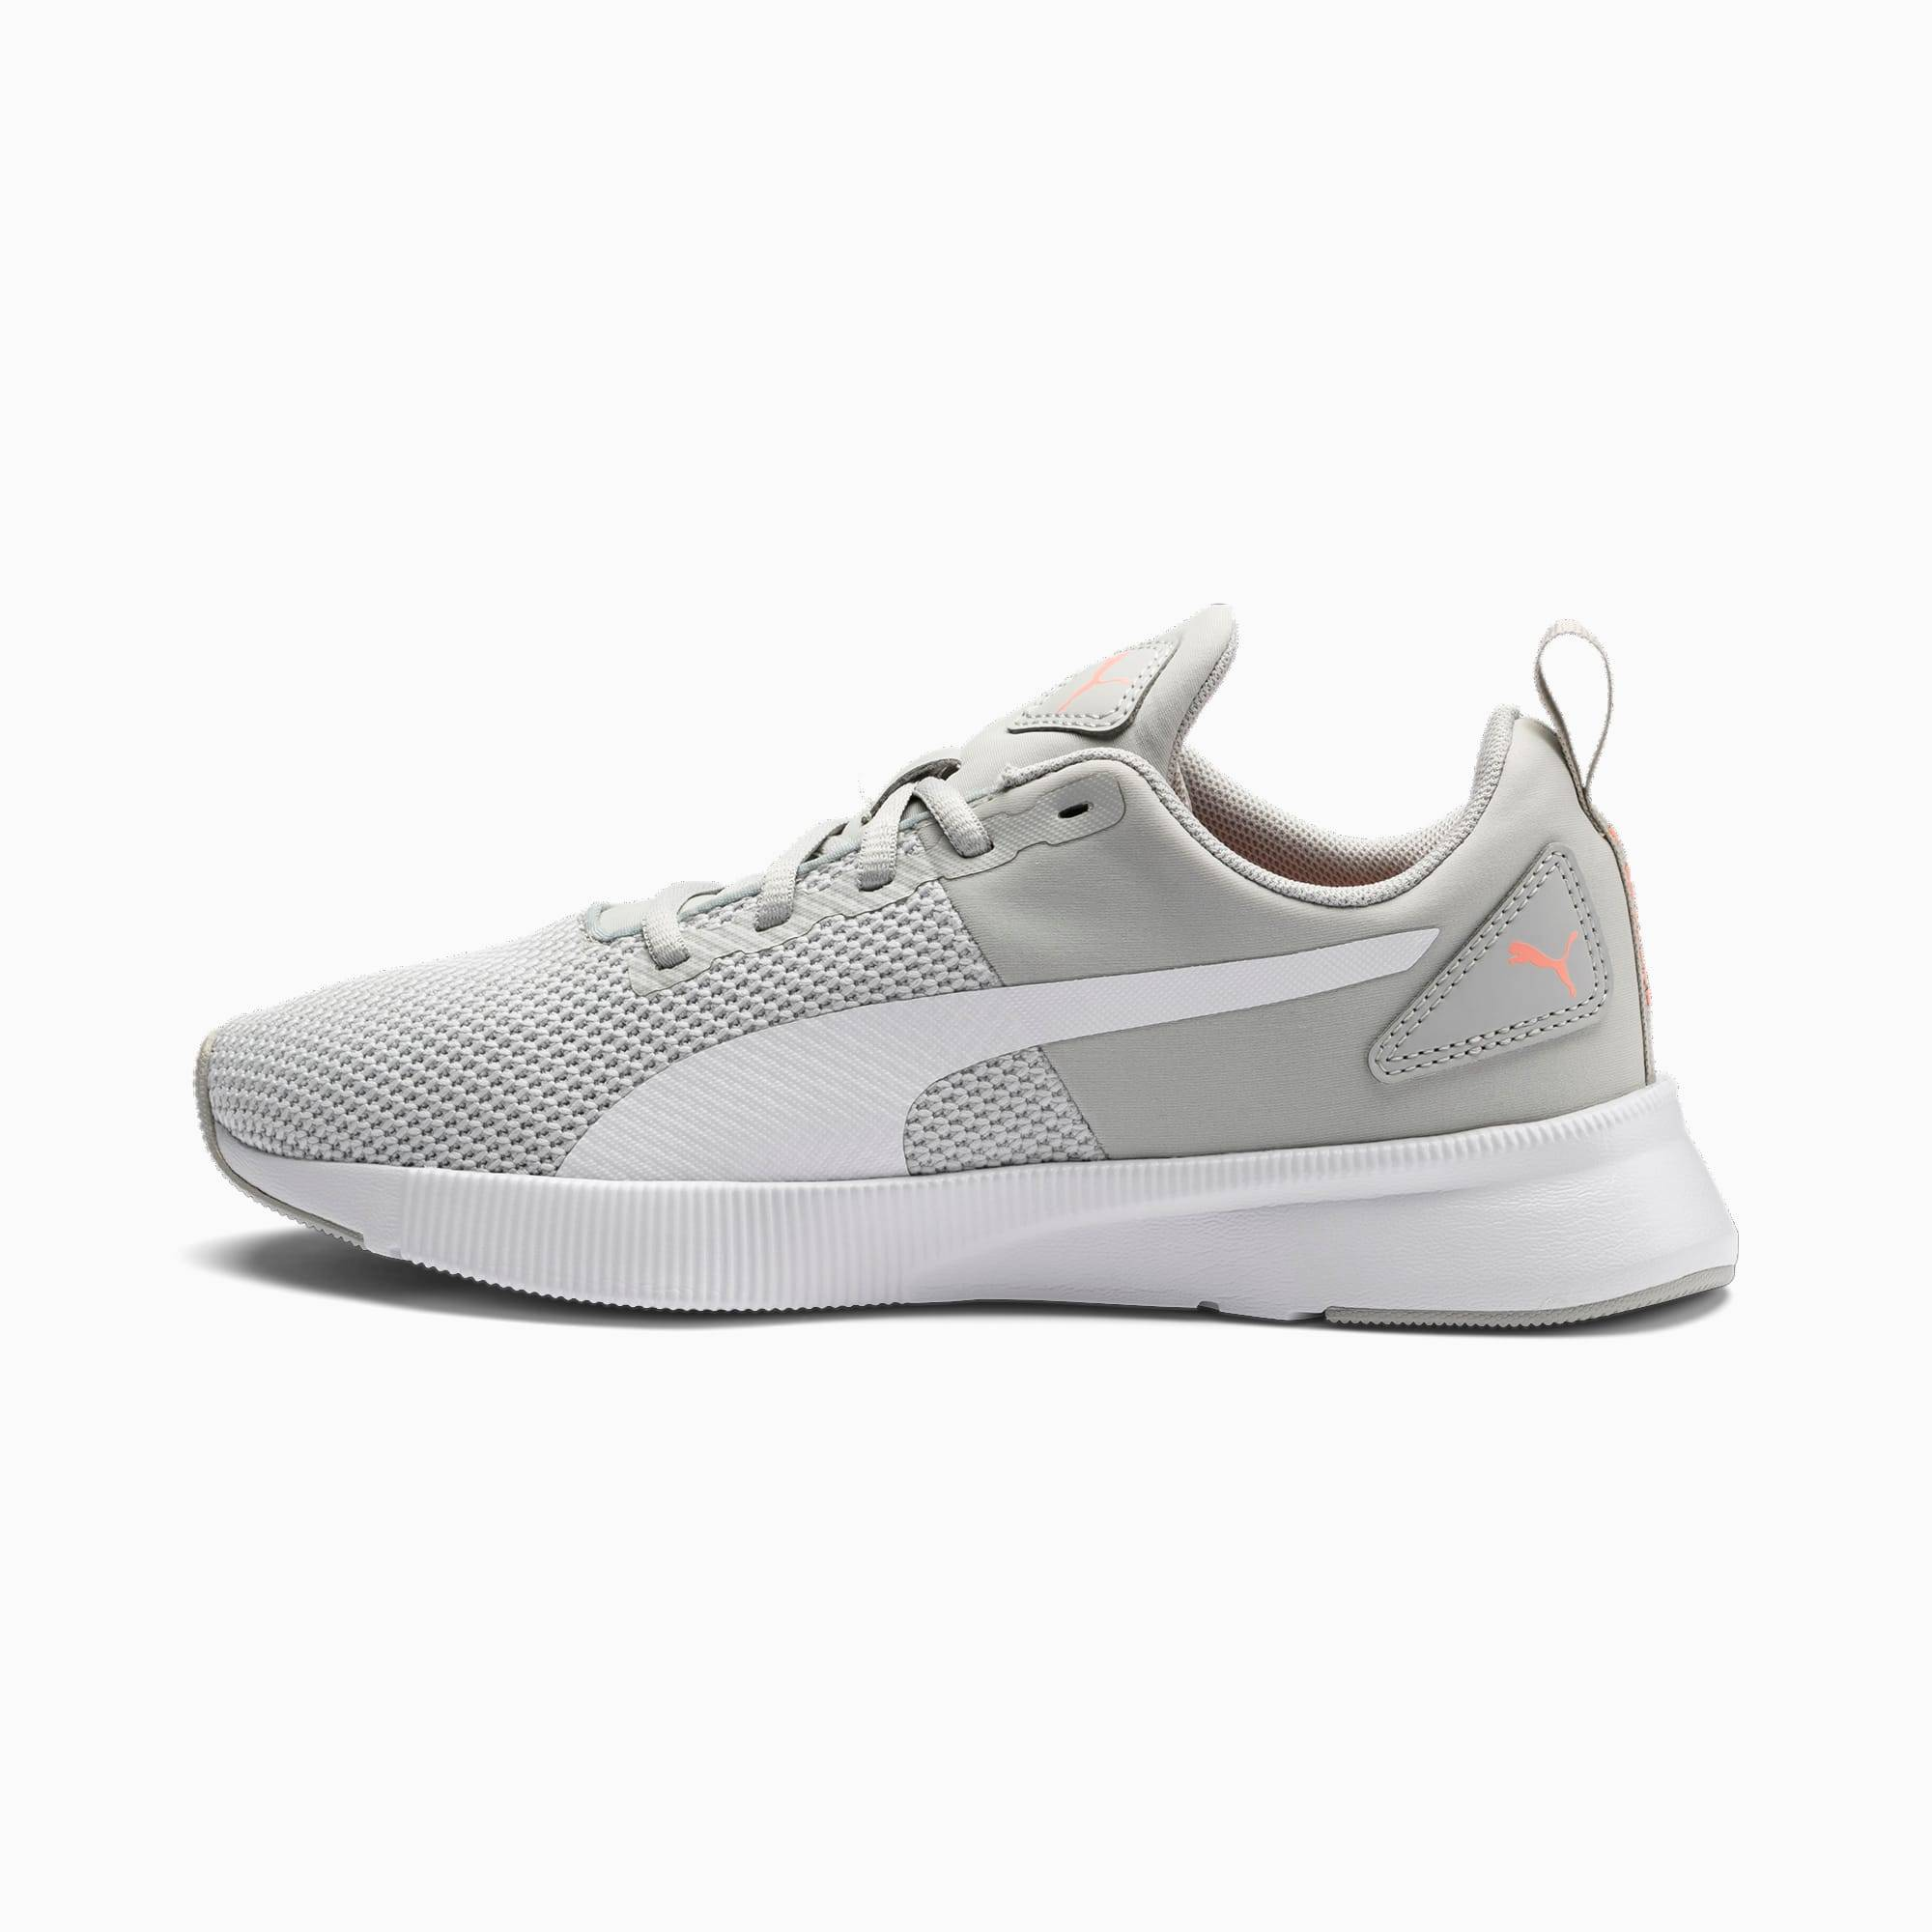 PUMA Chaussure de course Flyer Runner, Blanc/Rose/Gris, Taille 37.5, Chaussures